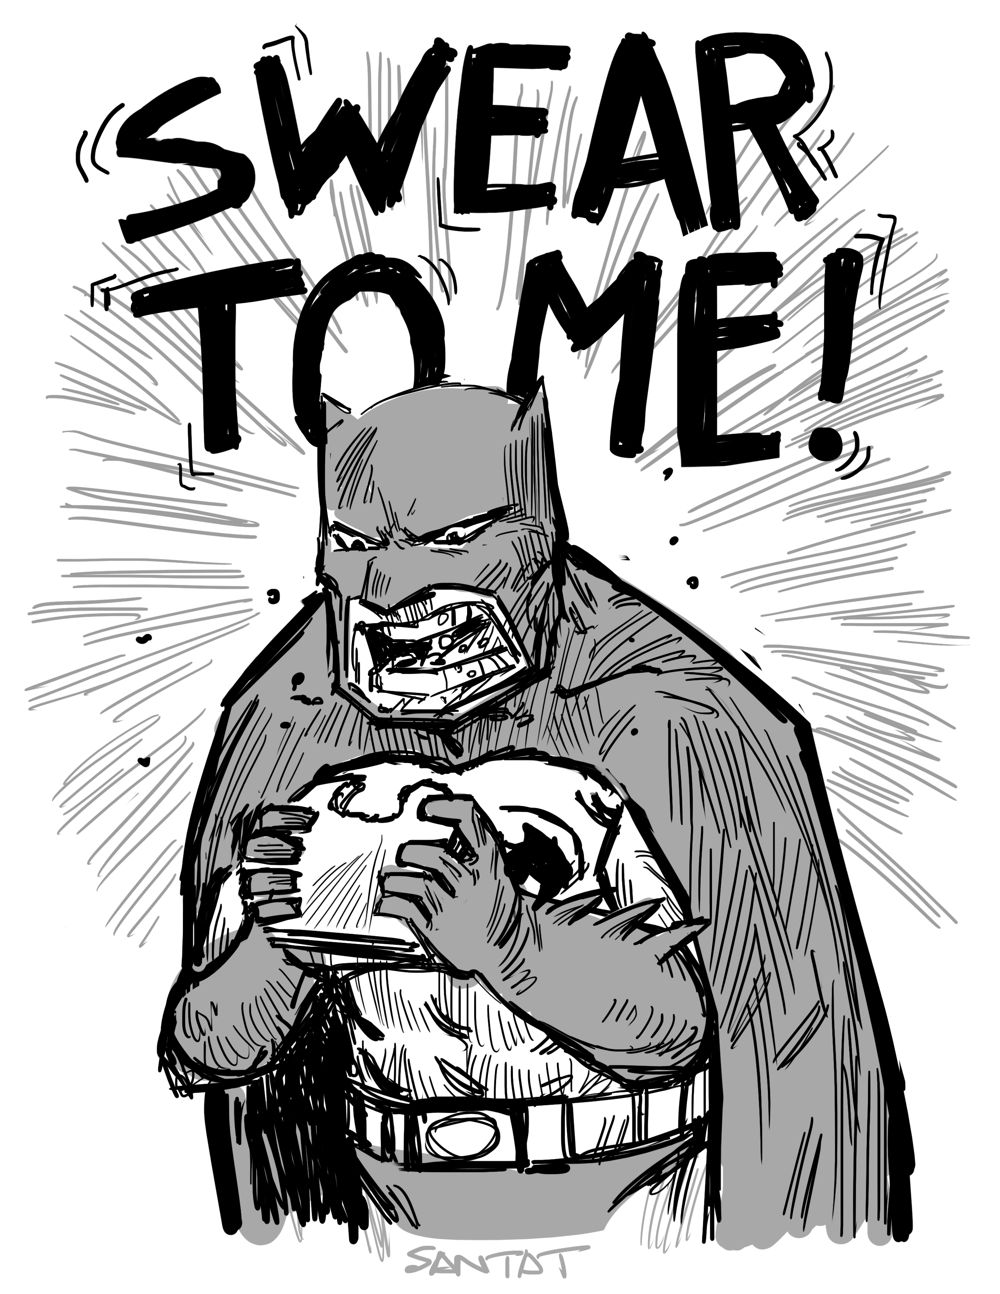 Batman eating a sandwich by Dan Santat